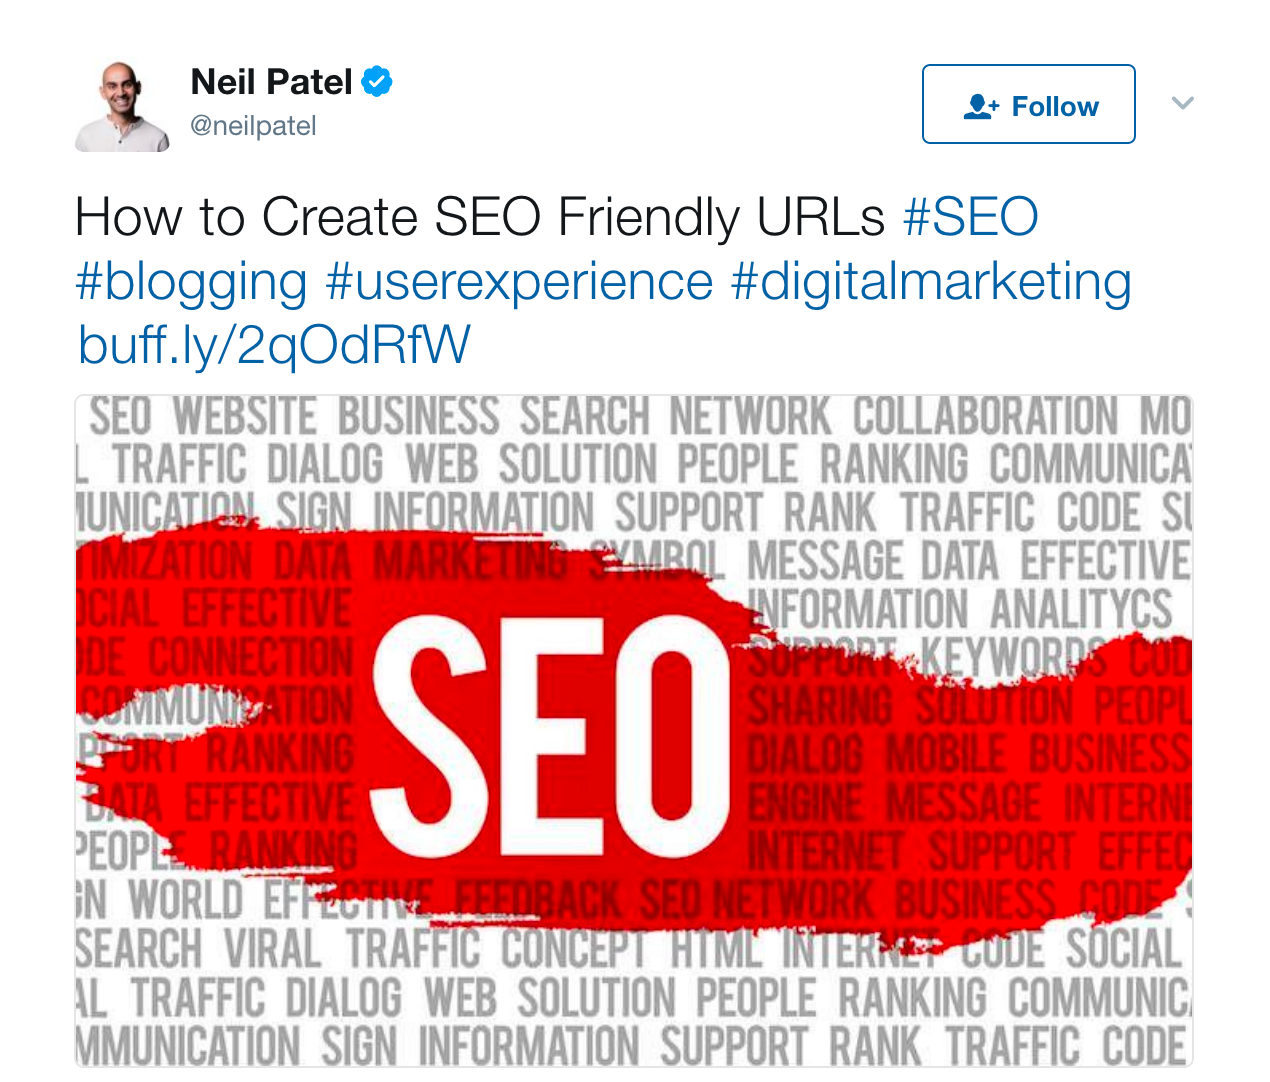 Tweet by Neil Patel